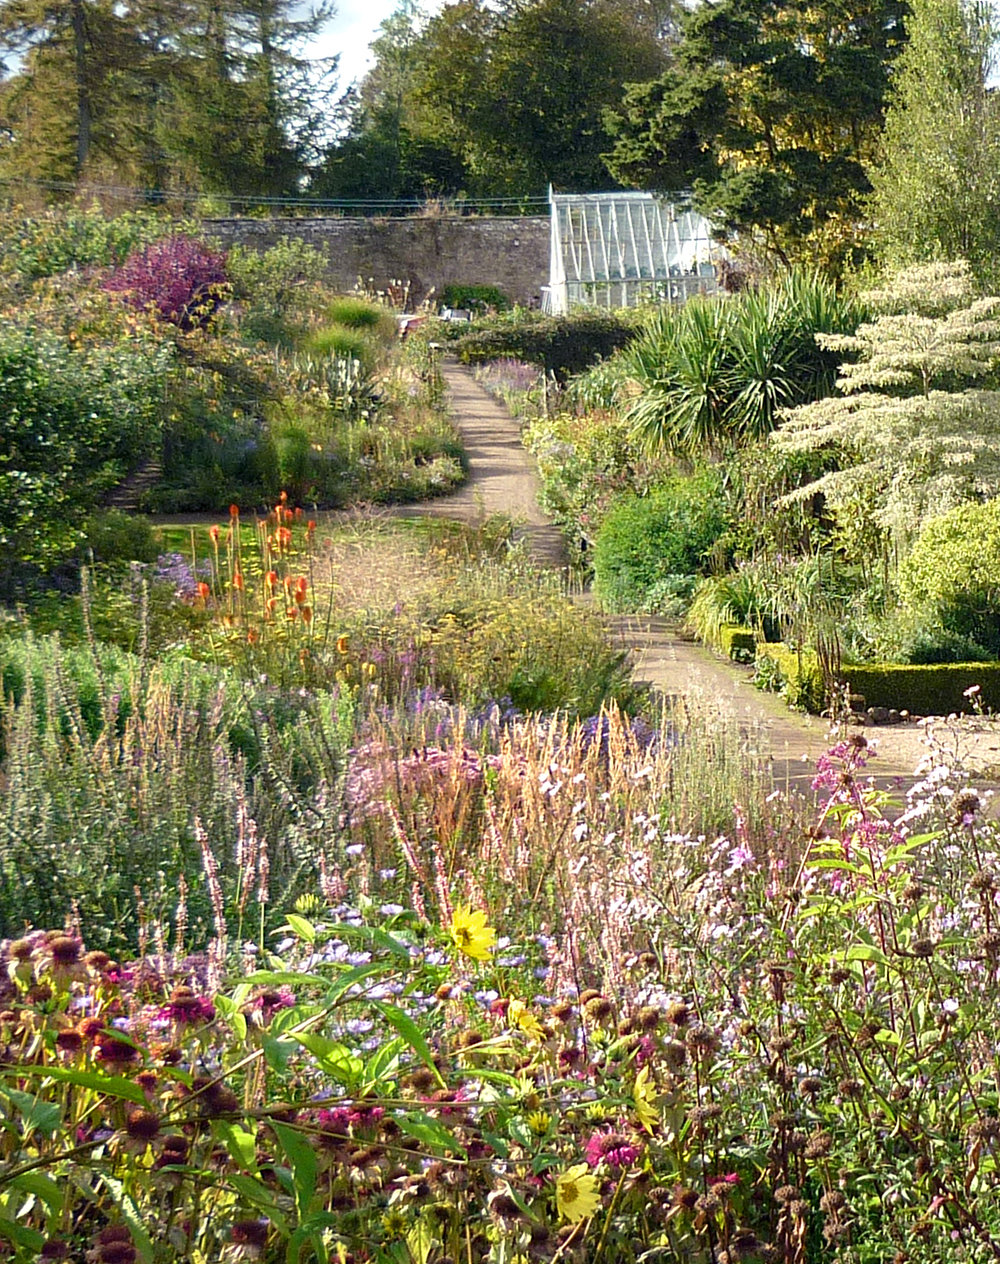 Late September in the walled garden. Photo courtesy of Sir Peter Erskine